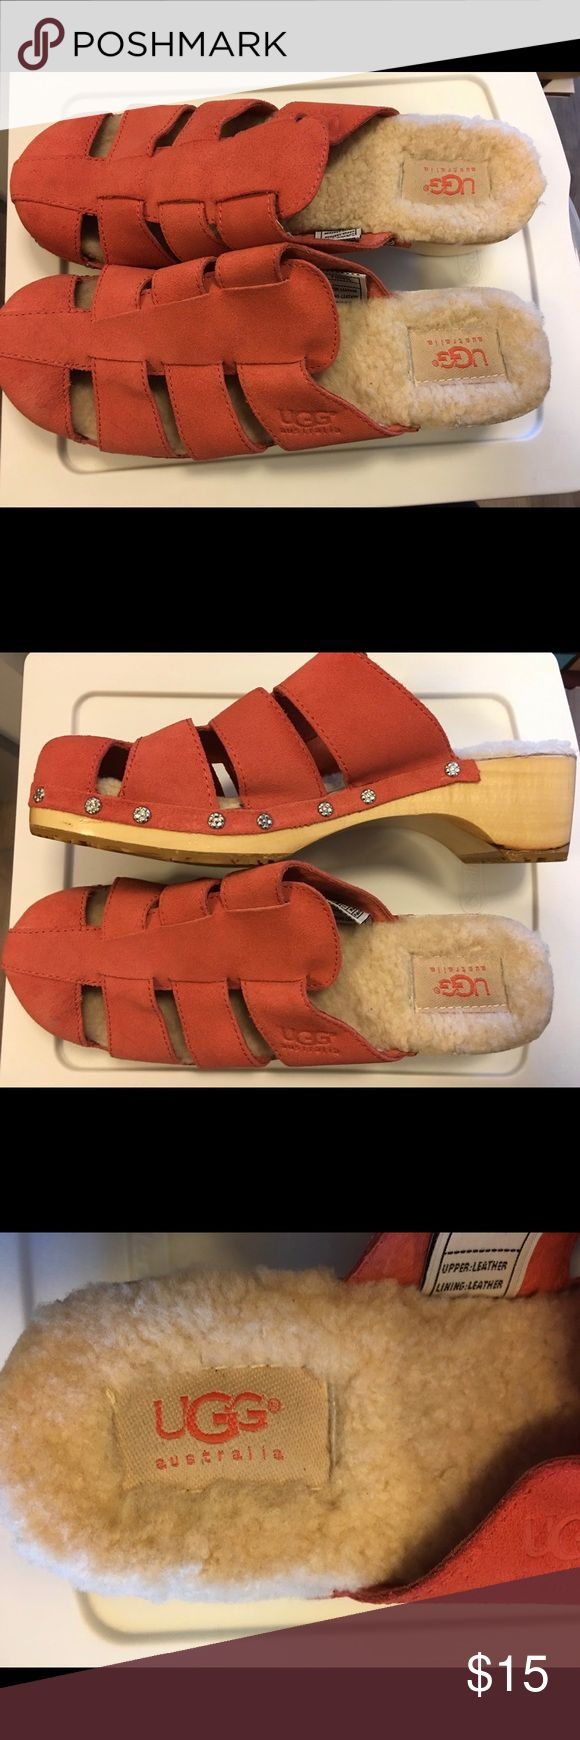 UGG Australia Mules in Coral Lightly worn! Great condition! UGG Shoes Mules & Clogs